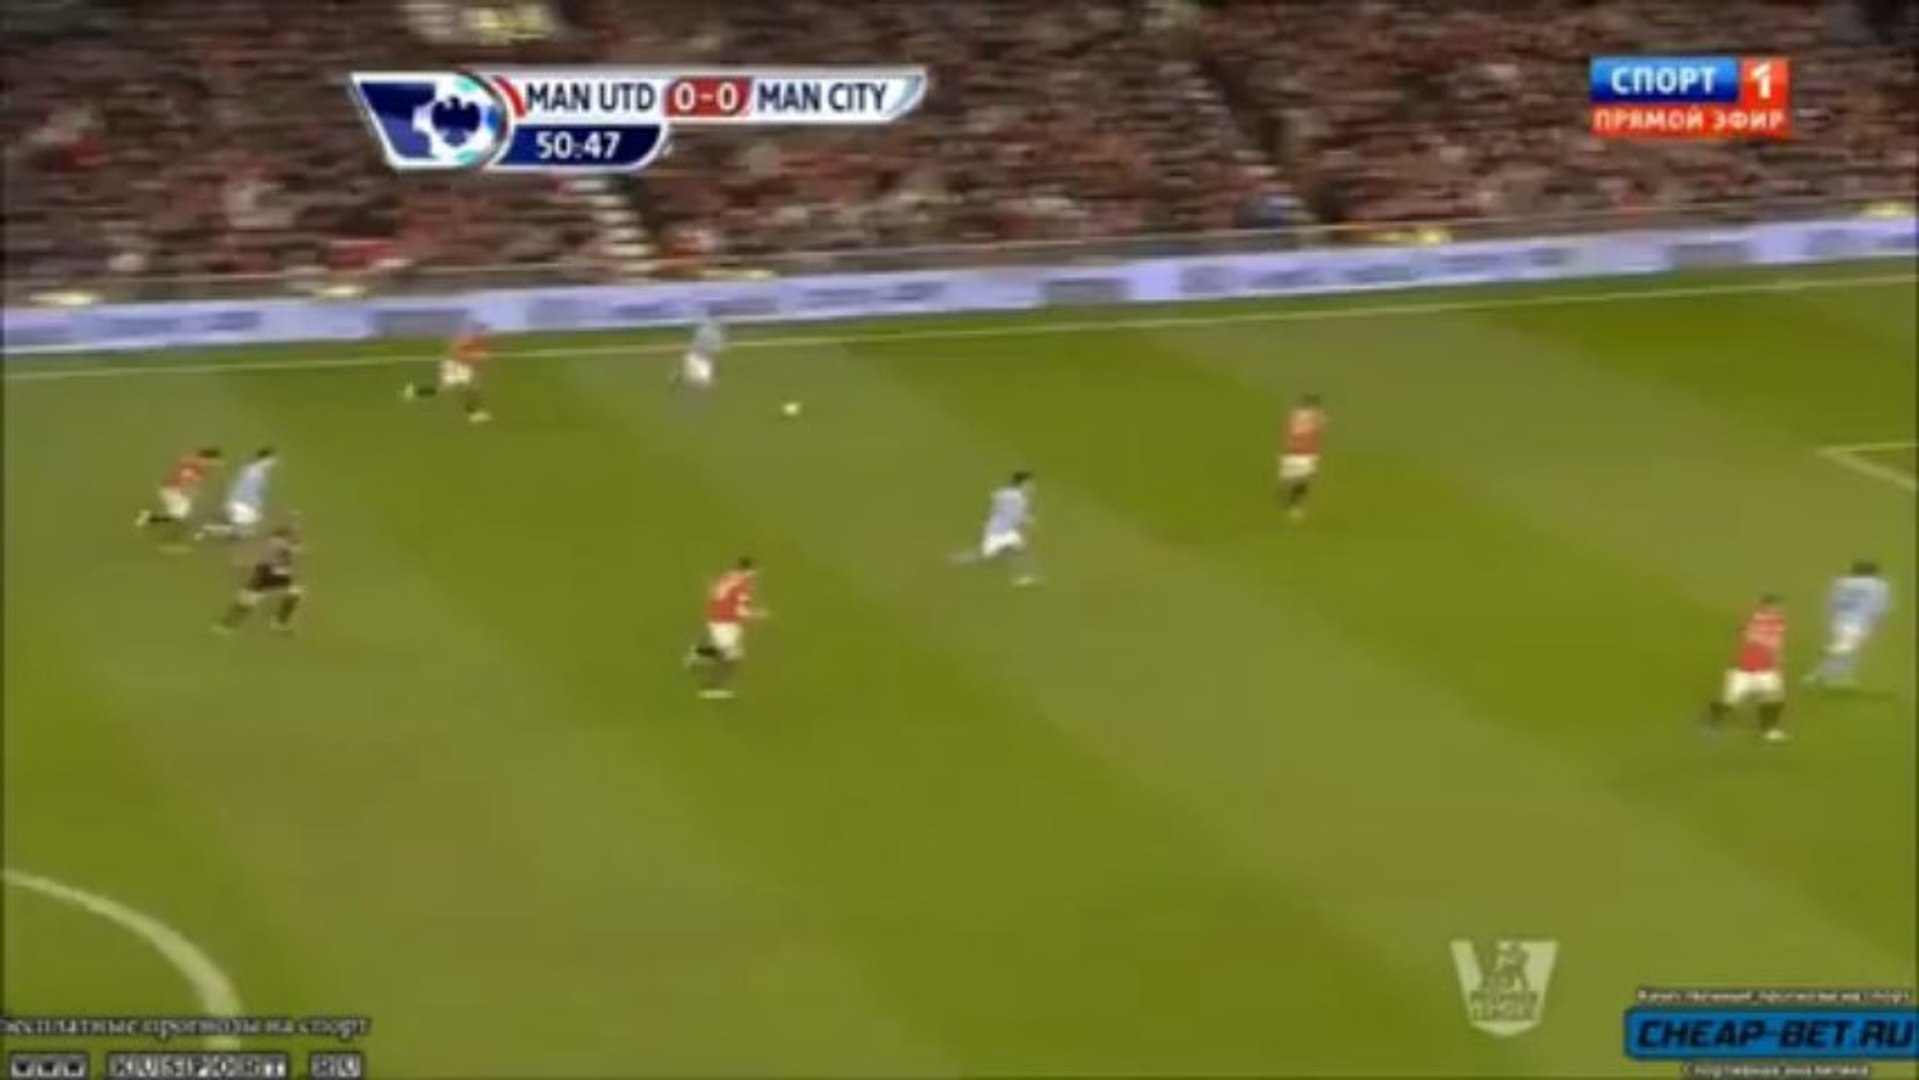 Manchester United 1-2 Manchester City - All Goals [08.04.2013]